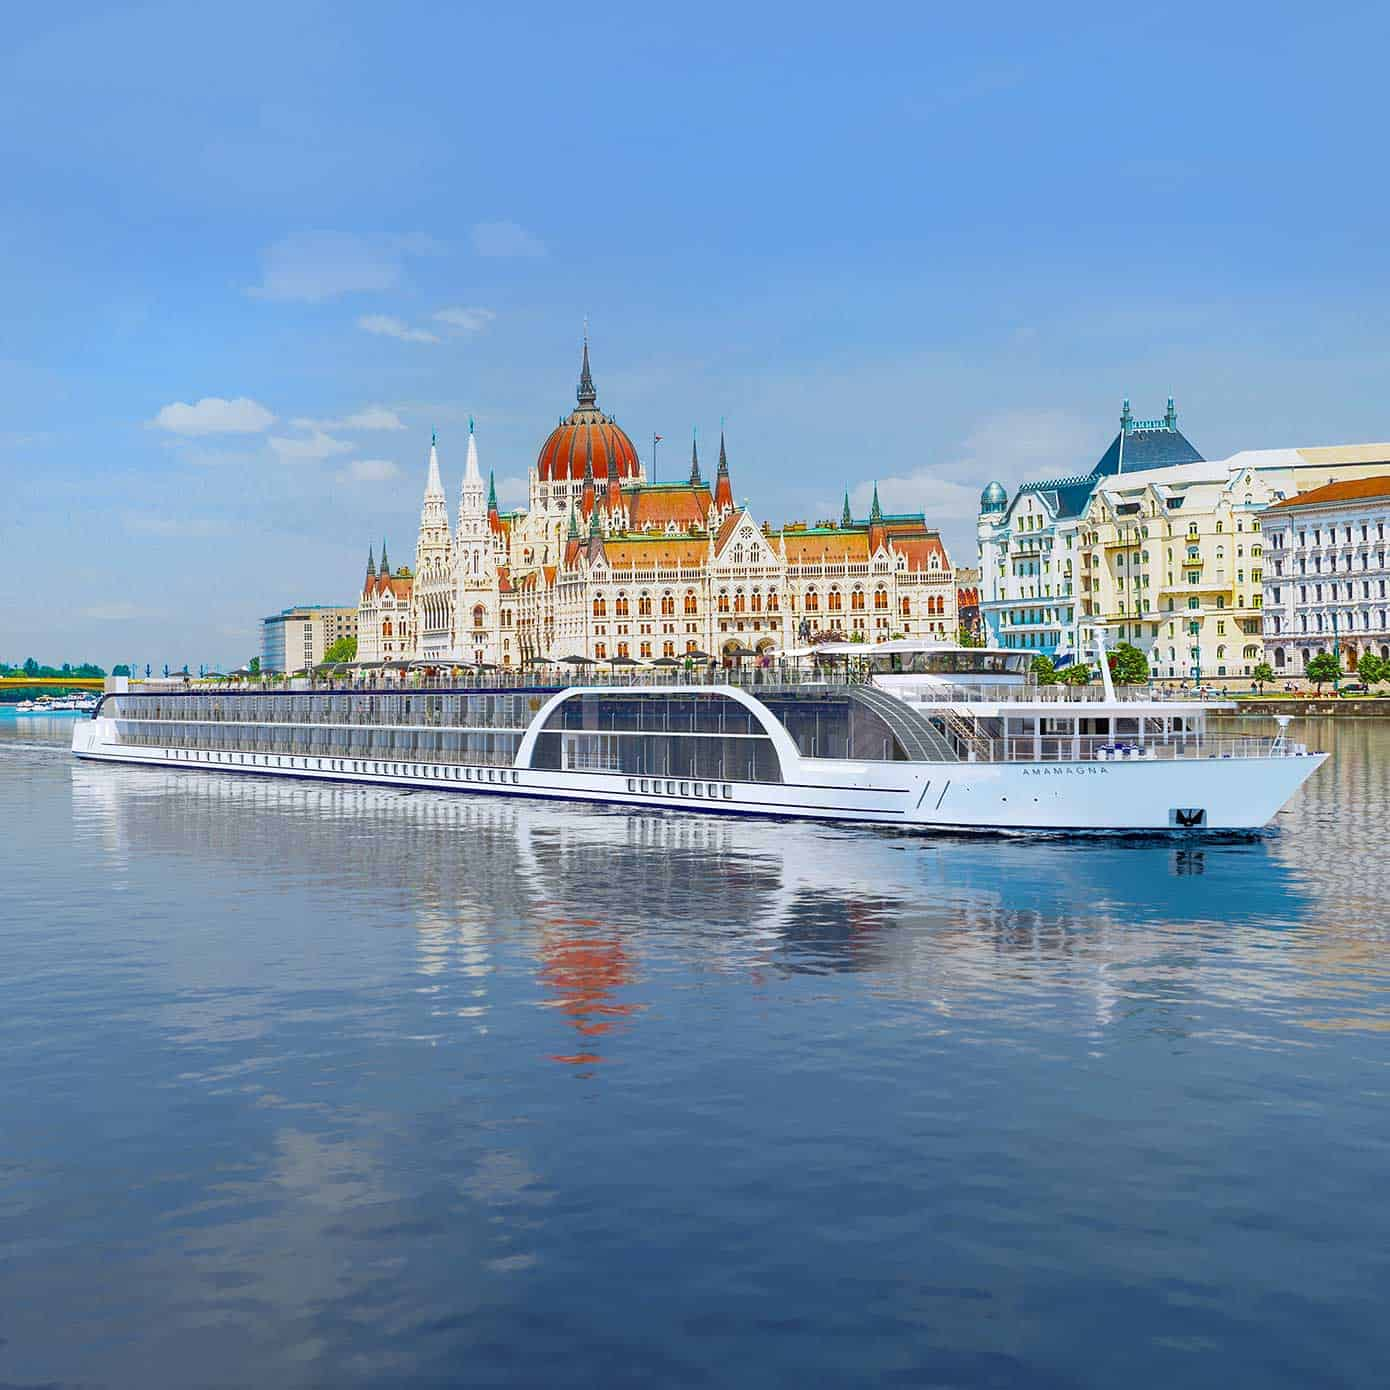 Exterior view of a river cruise ship with a historic city in the background.